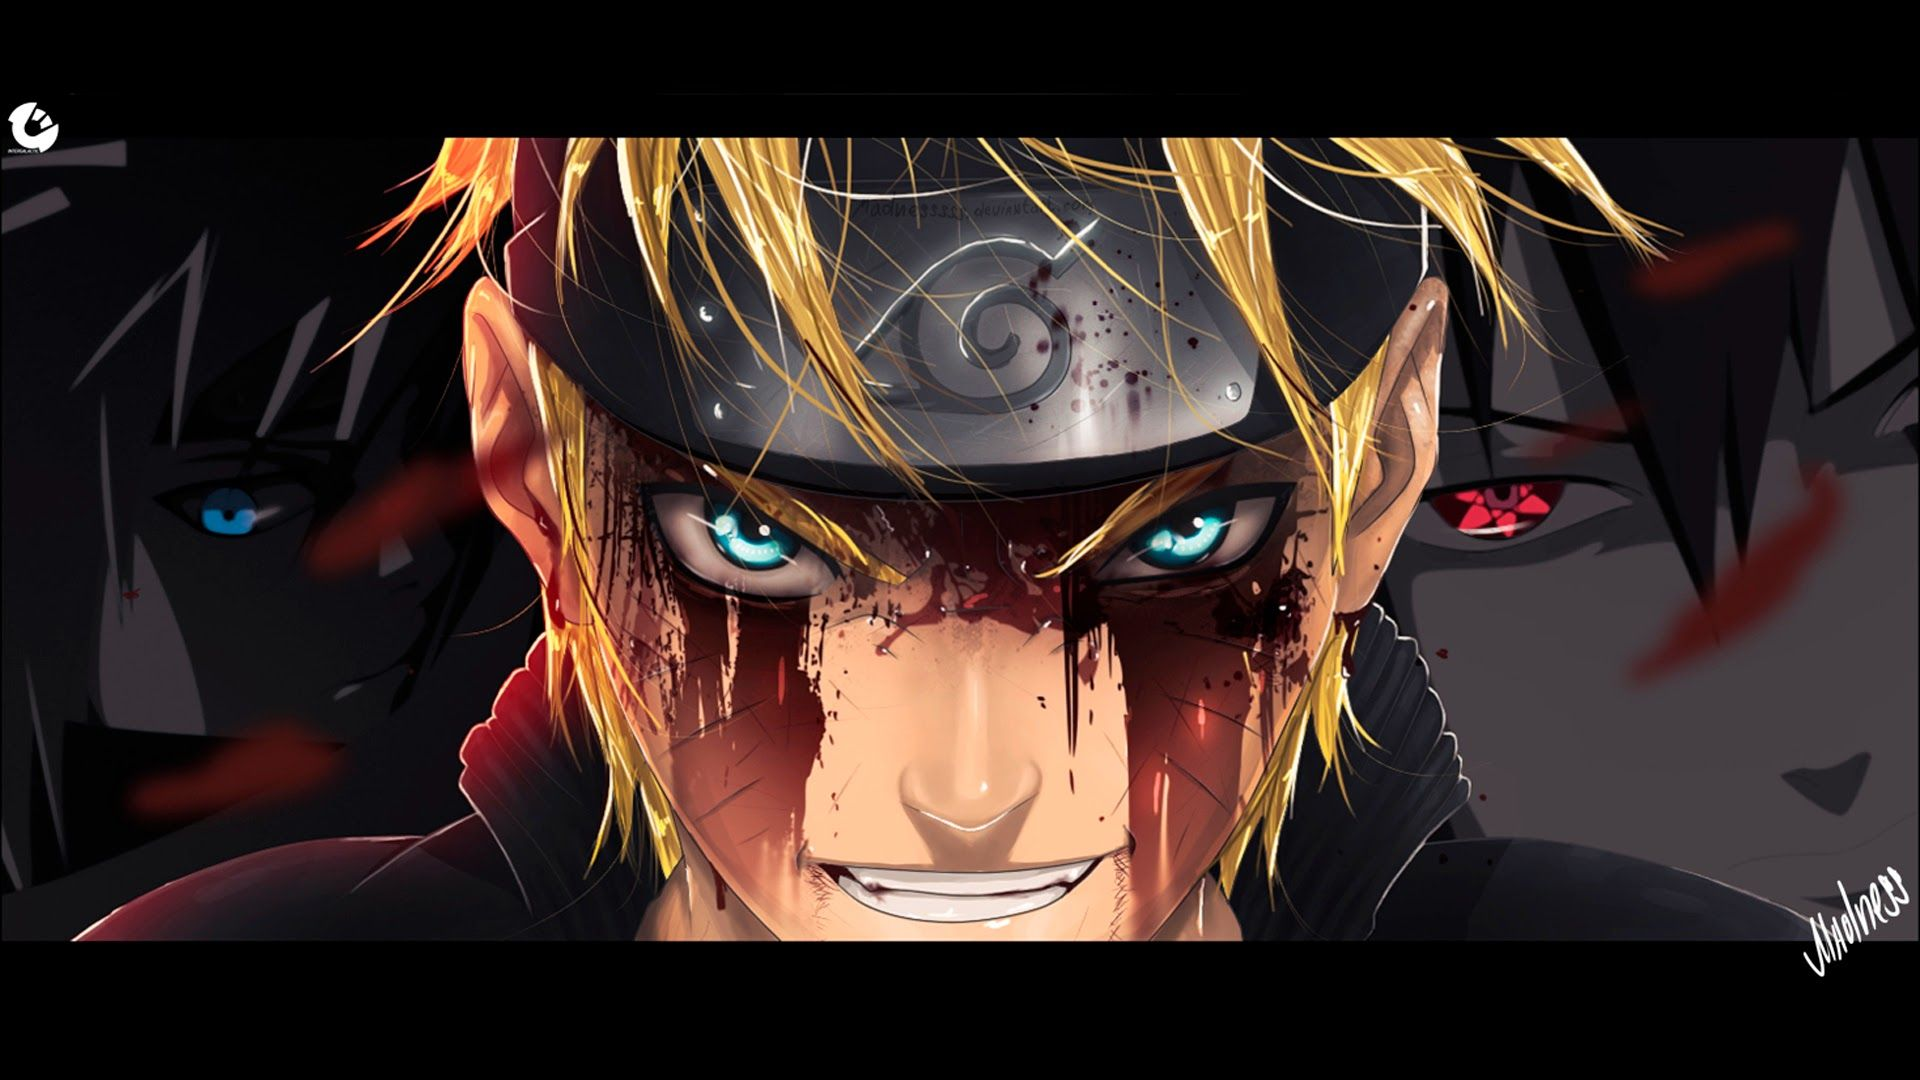 Naruto Wallpapers HD Group 1366—768 Wallpapers Naruto Full